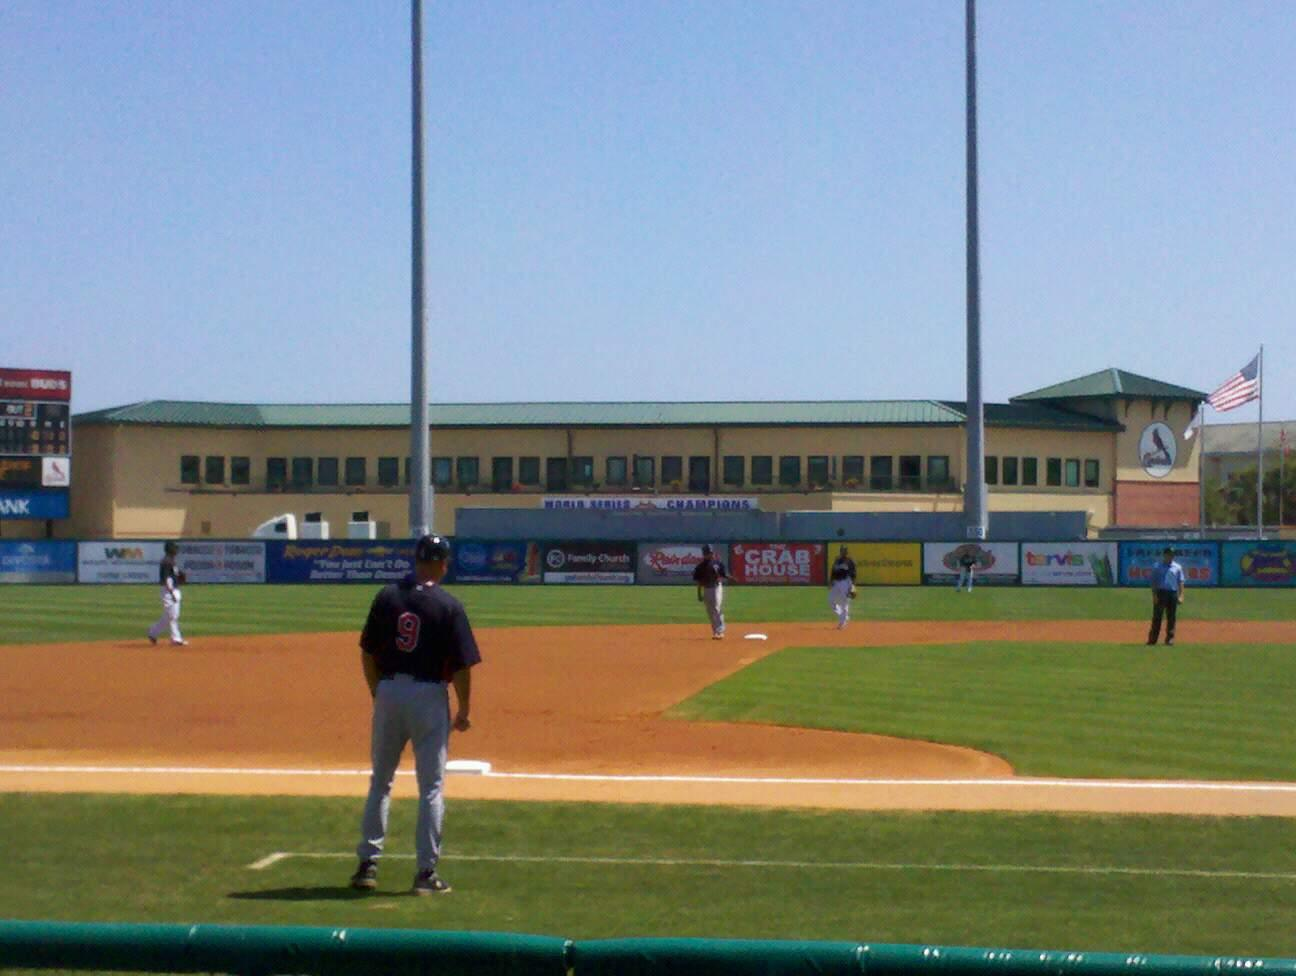 Roger Dean Stadium Section 119 Row 5 Seat 5